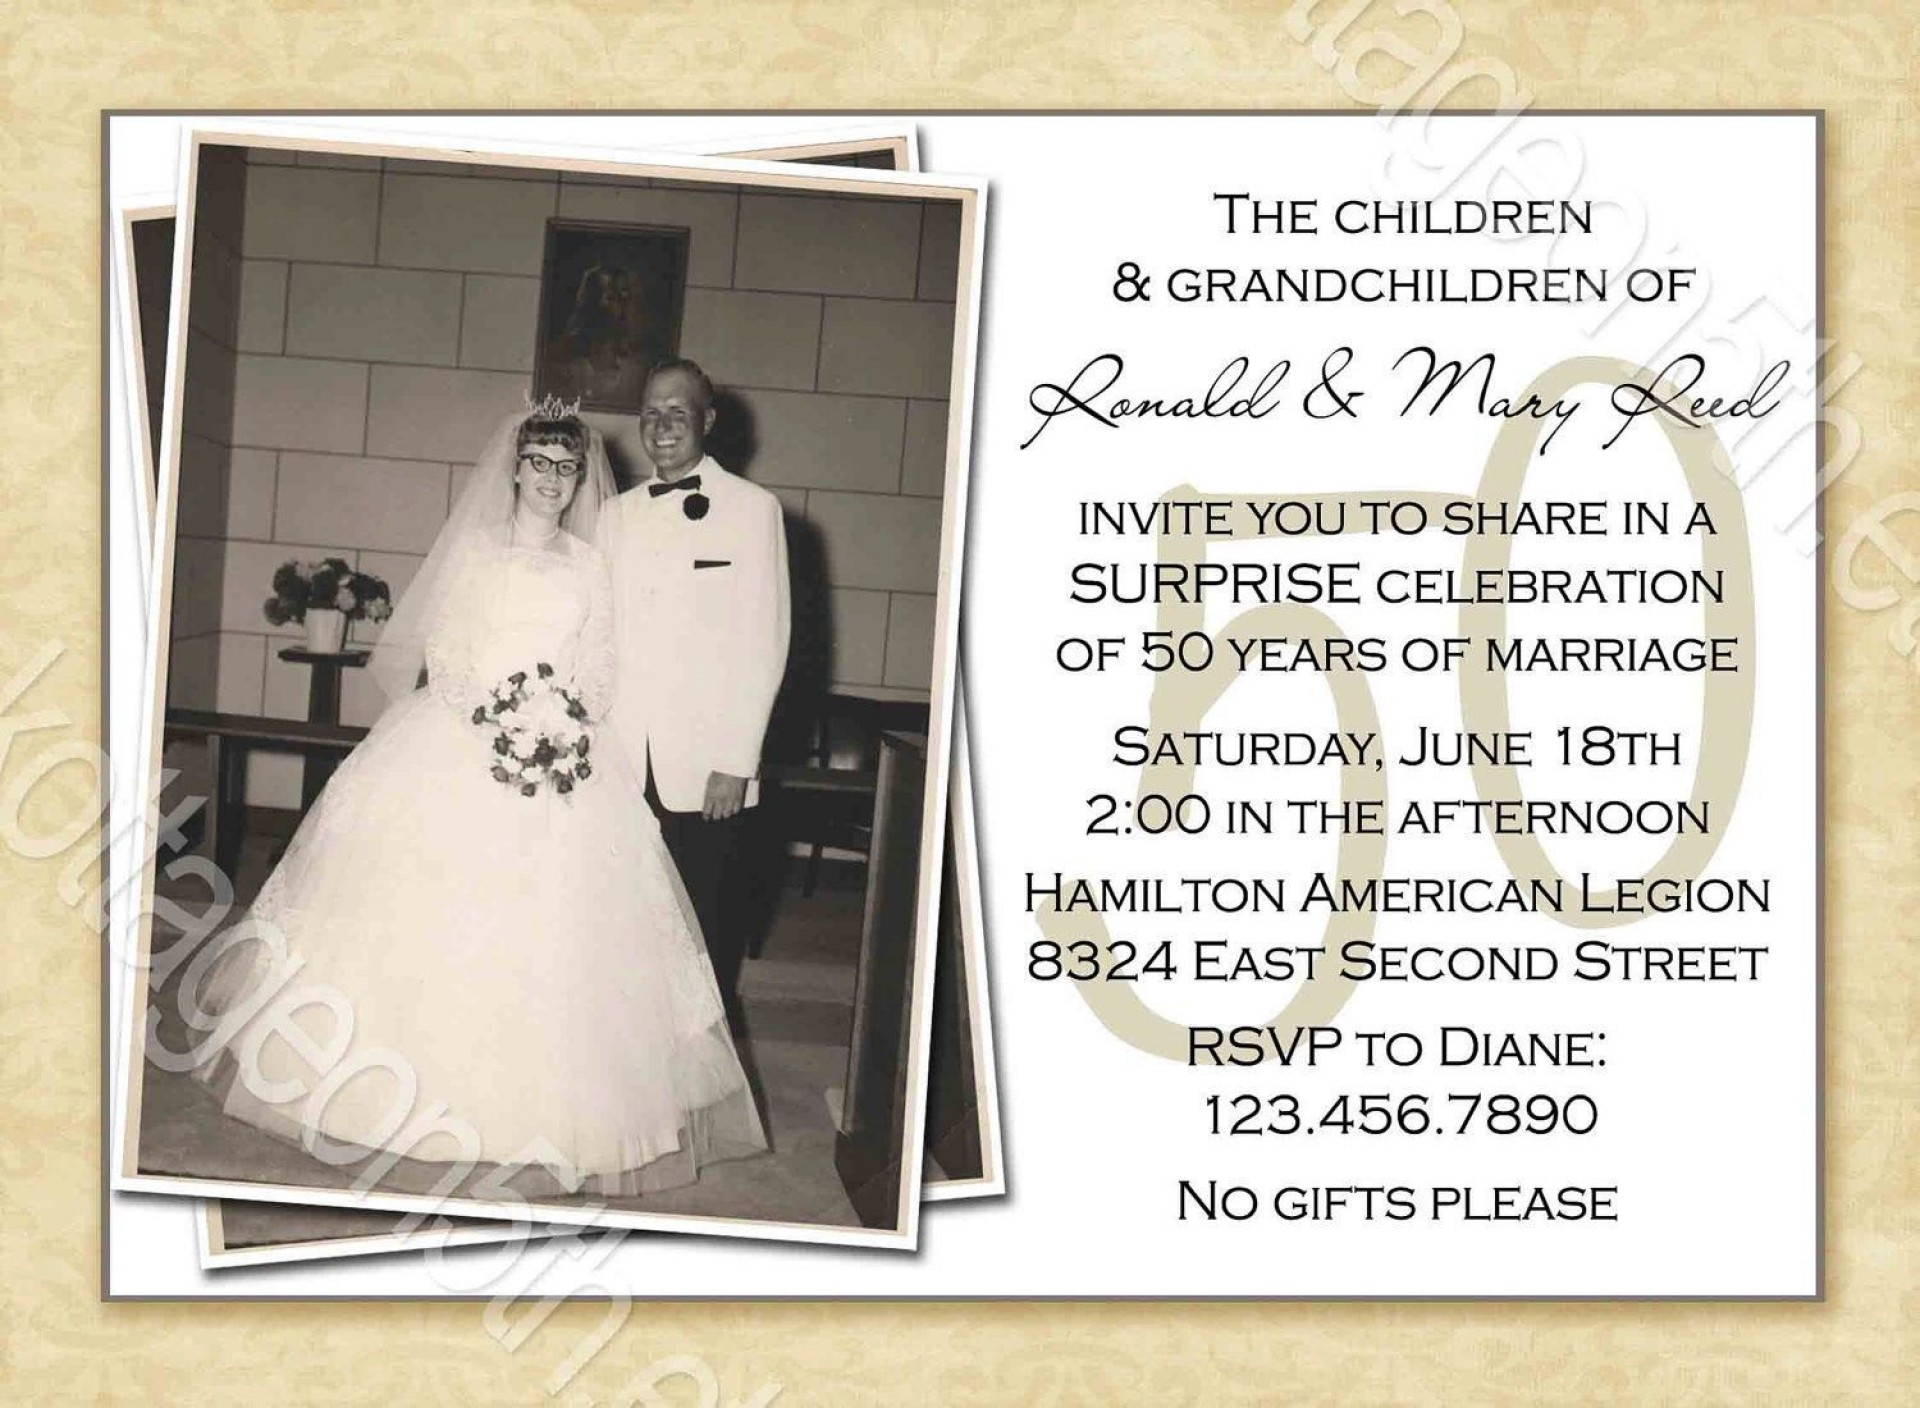 000 Marvelou 50th Wedding Anniversary Invitation Template Free Image  Download Golden Microsoft Word1920